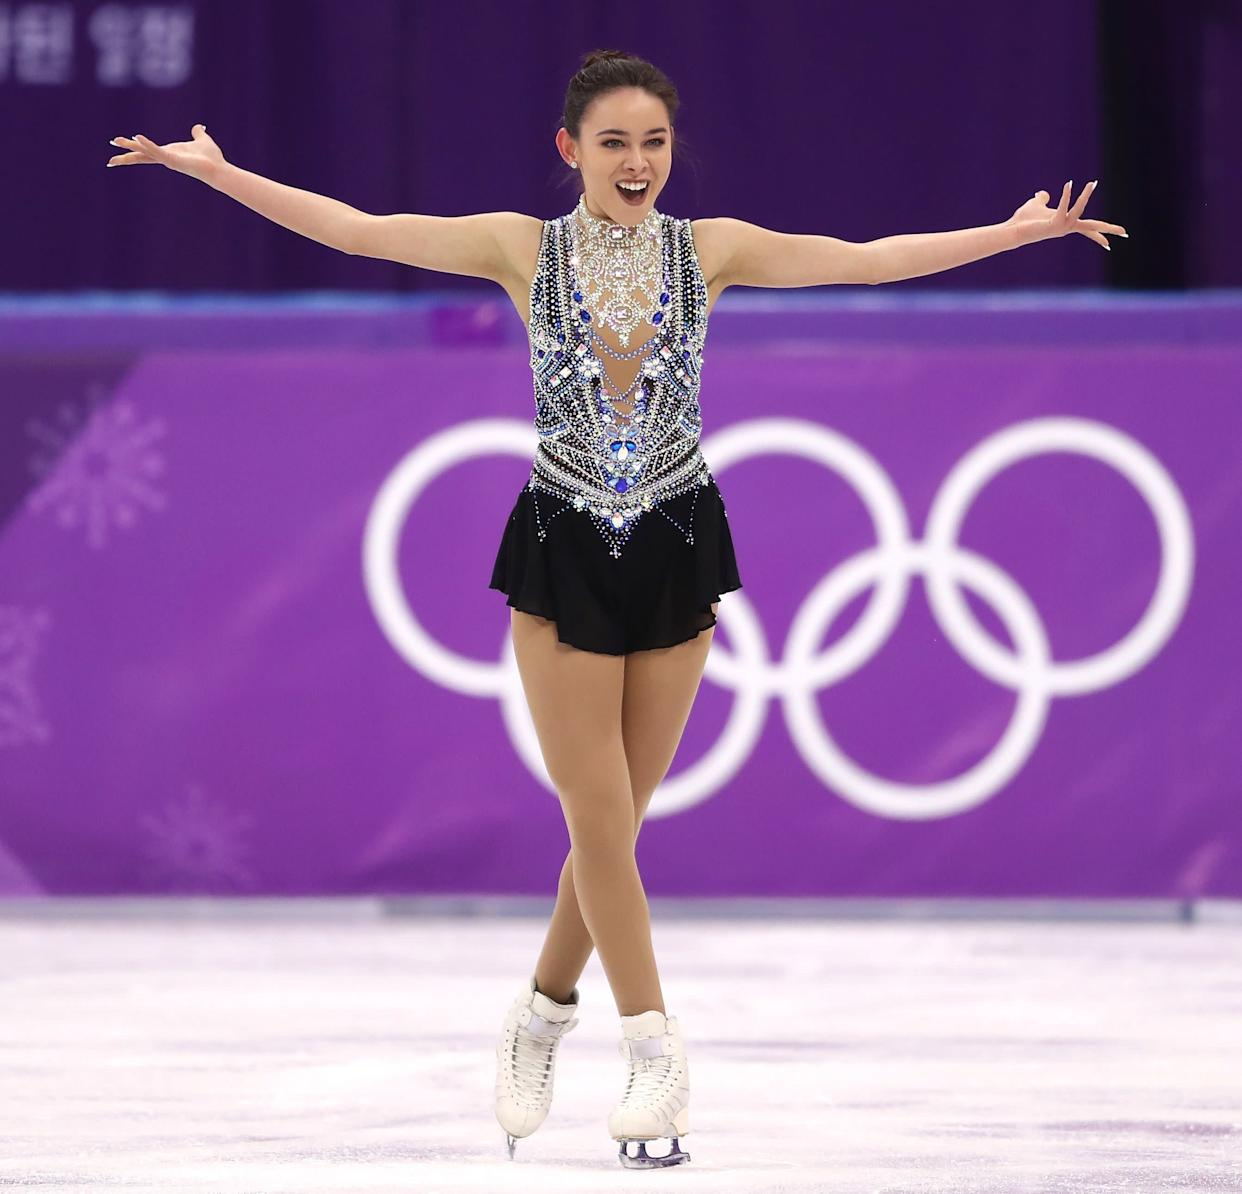 Craine, of Australia, kind of took sparkle to a new level with this costume, which she wore for her free skate during the ladies single competition. There's a lot going on with that bodice, but she looked so confident and happy wearing it, which makes us love it.